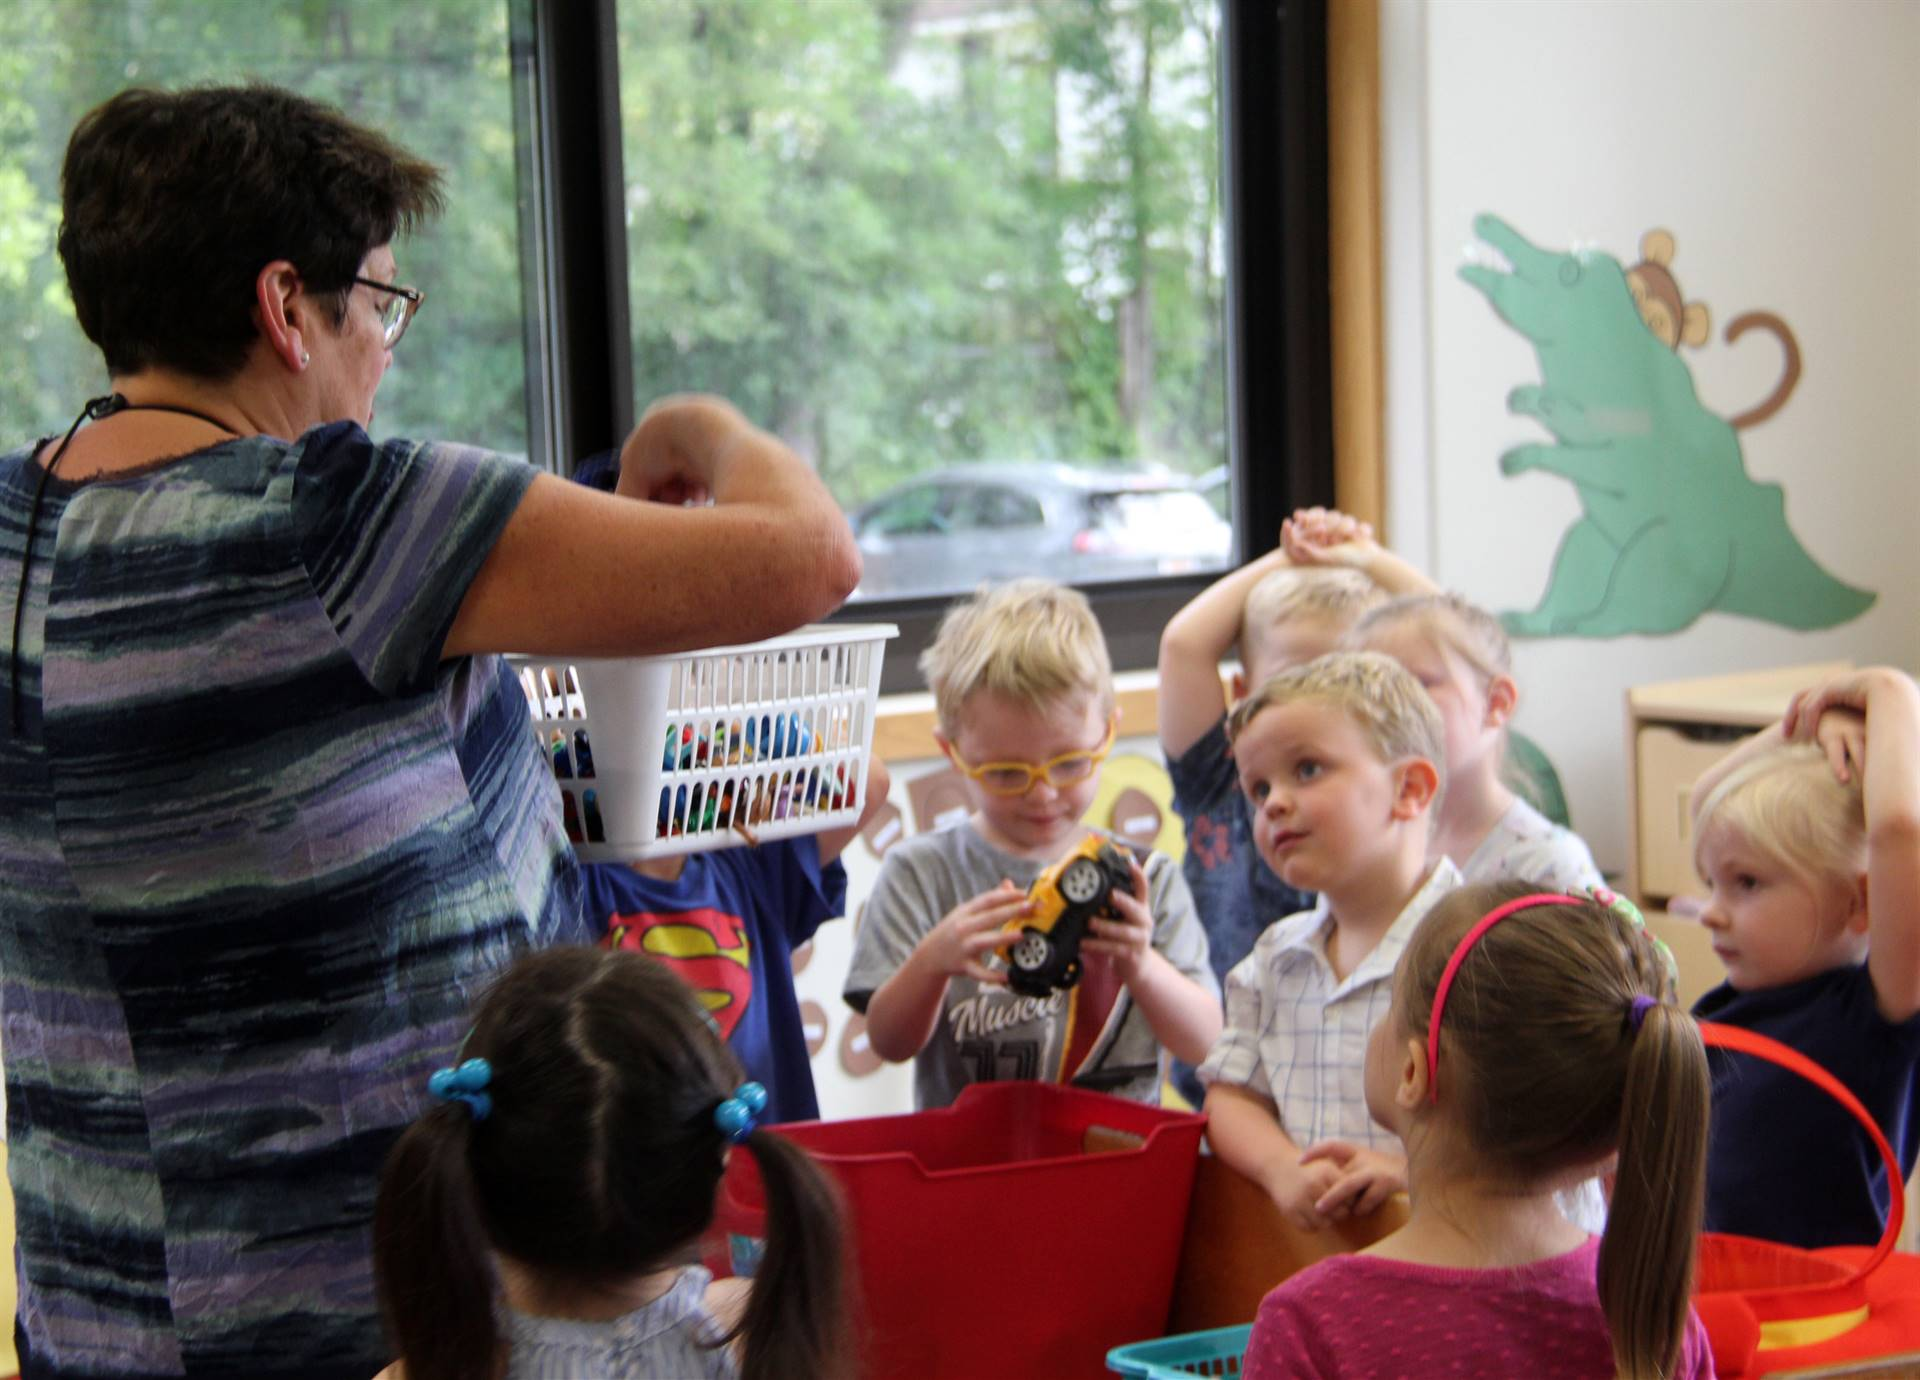 another photo of teacher showing students toys